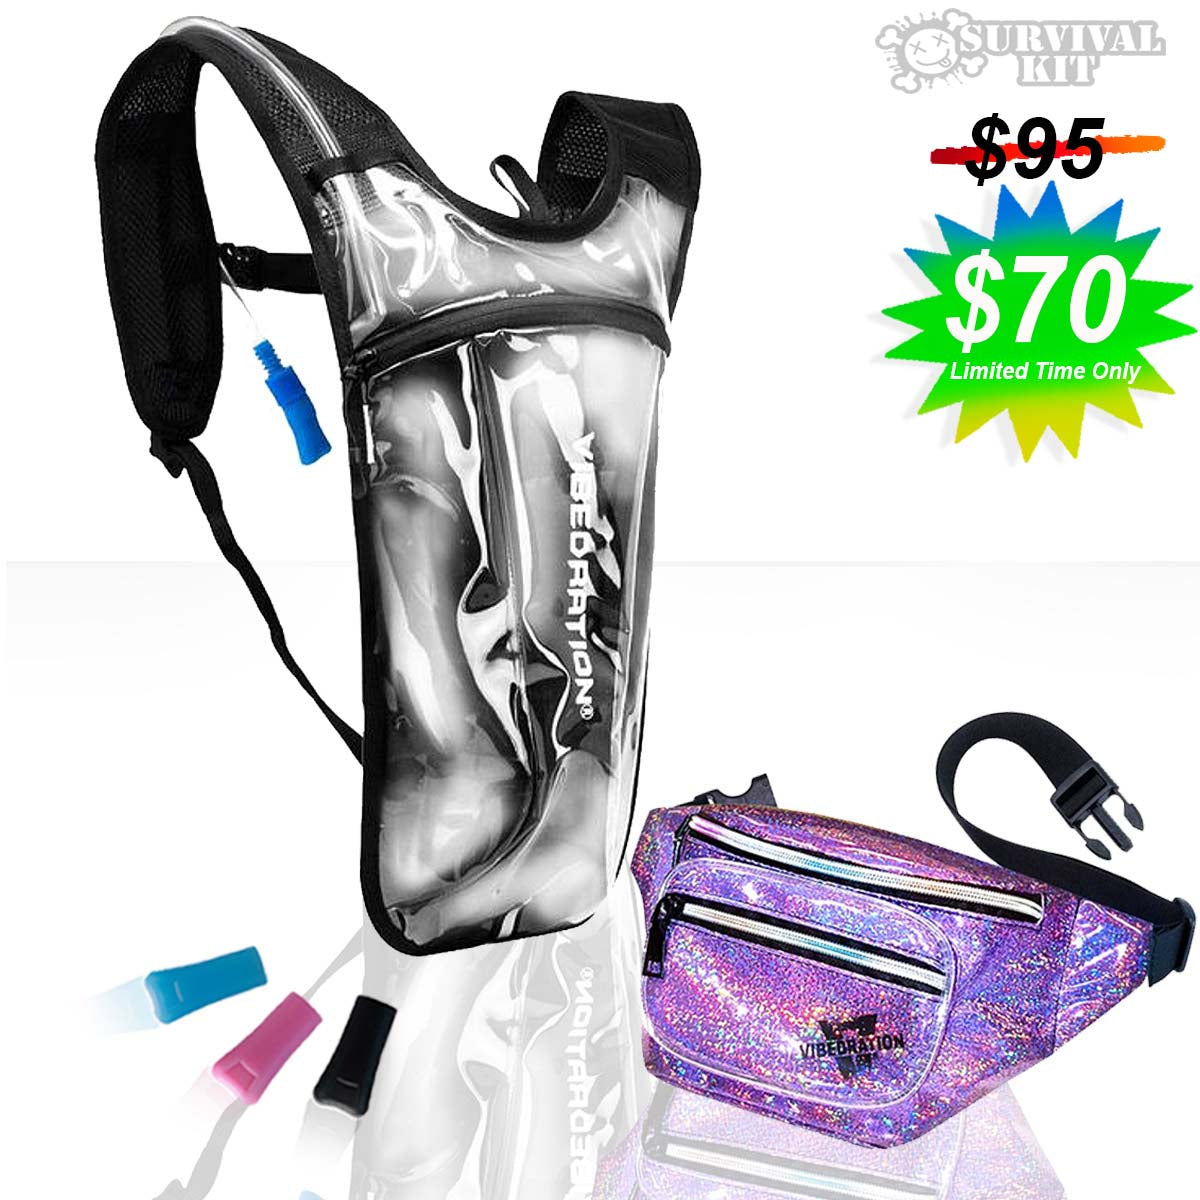 Clear water pack and lavender holographic fanny pack